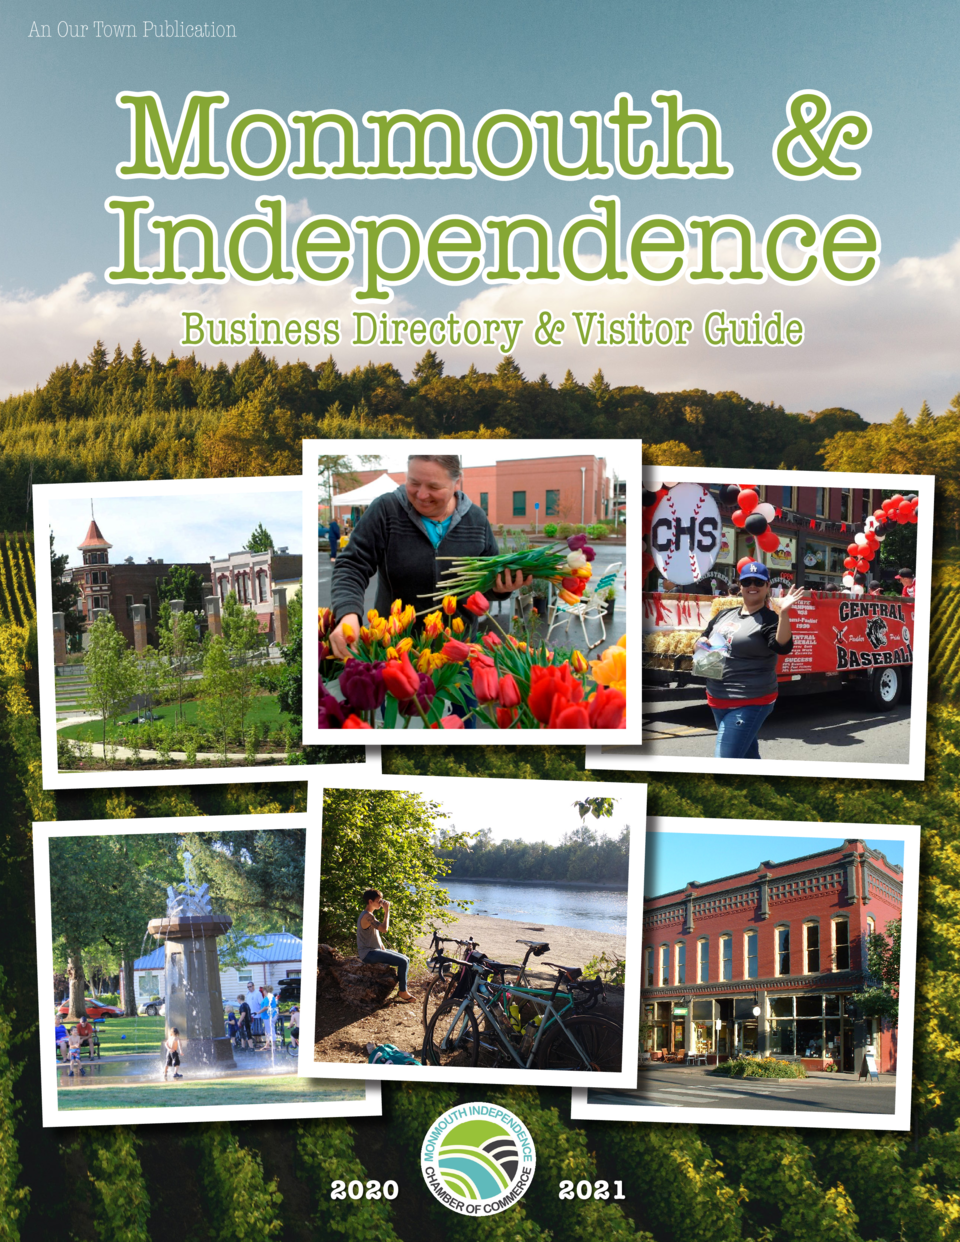 An Our Town Publication  Monmouth   Independence Business Directory   Visitor Guide  2020  2021  1